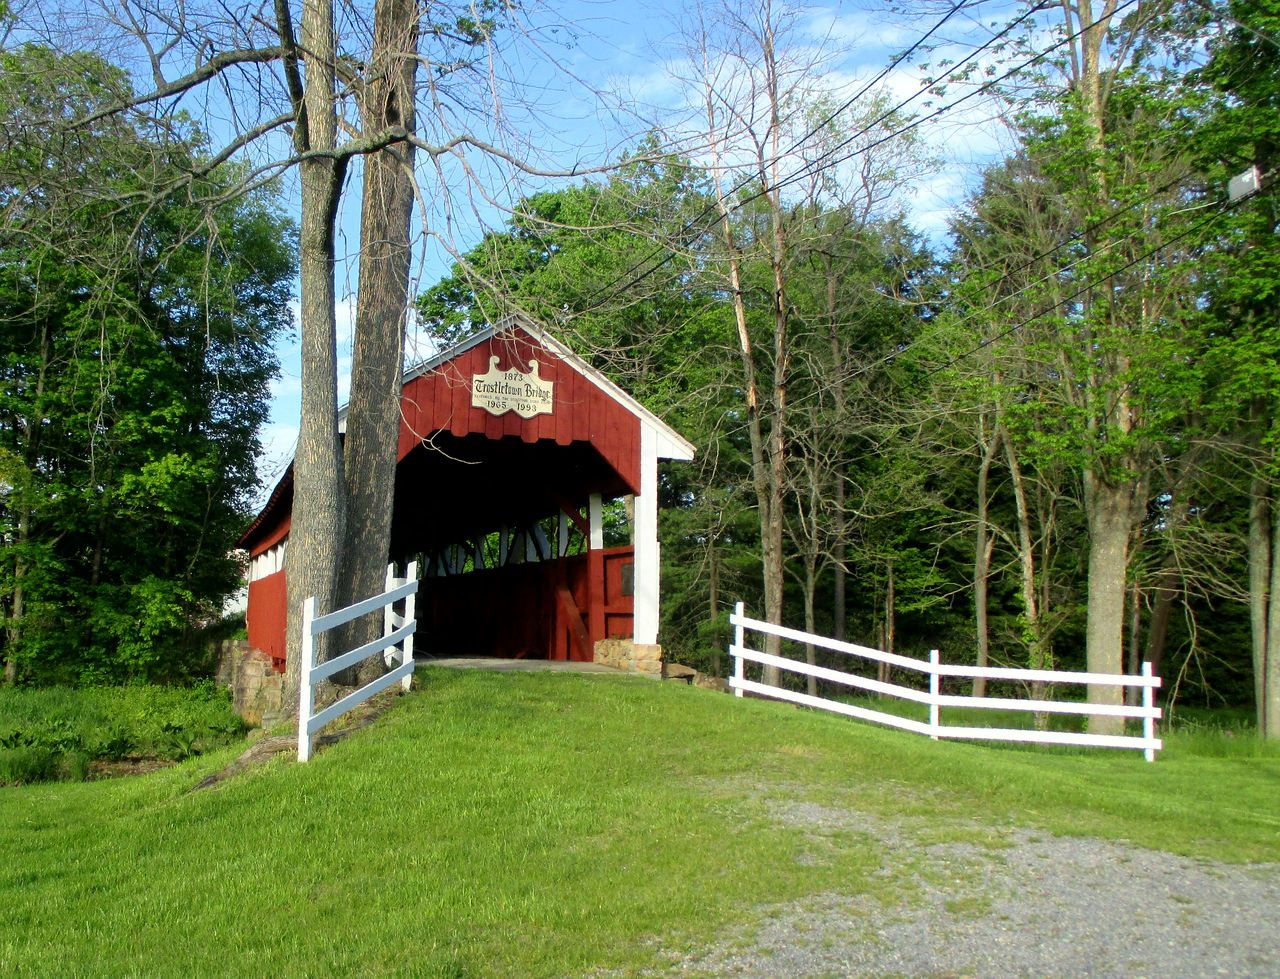 Covered bridge Tree Grass Green Color Built Structure Architecture Day No People Outdoors Growth Sky Nature Nature Covered Bridge Bridge Fence